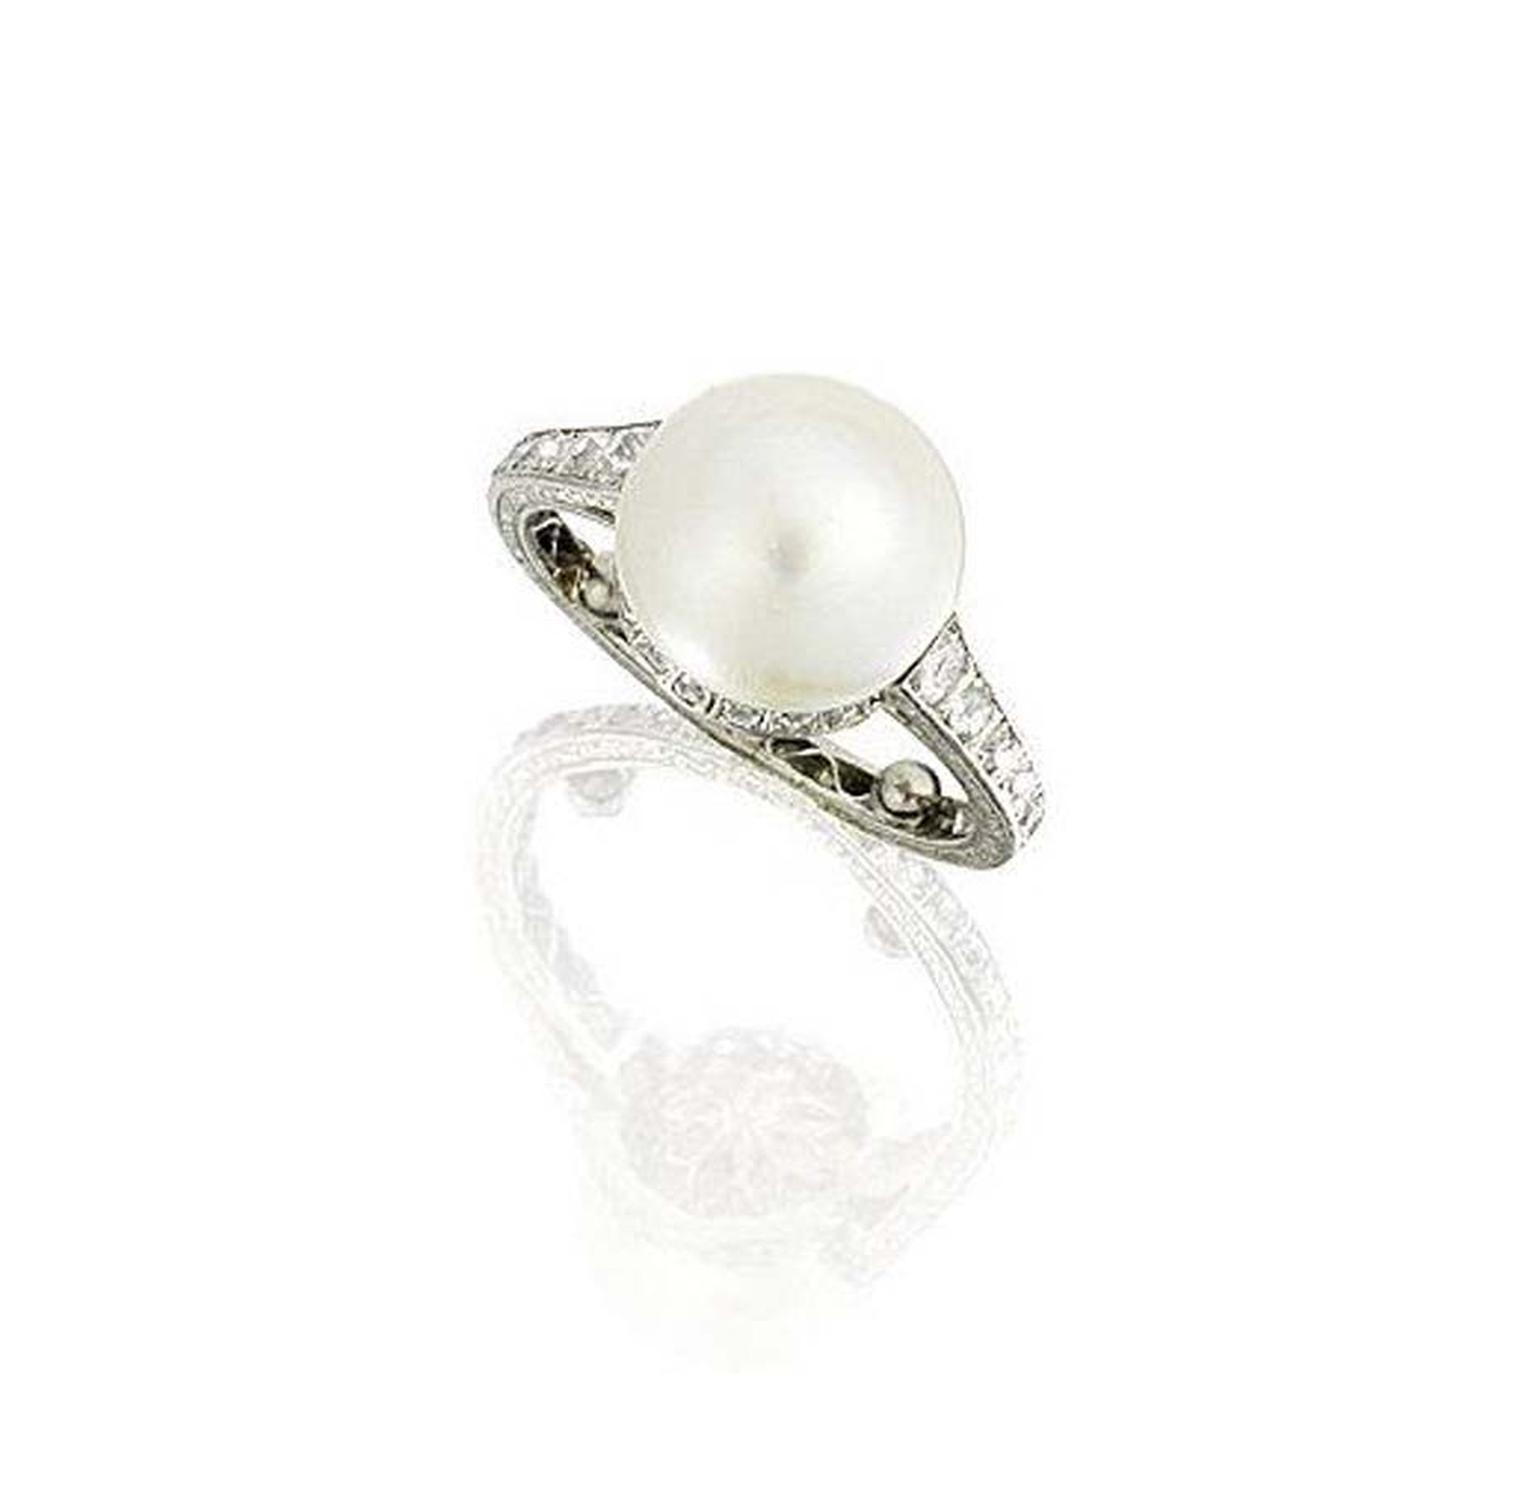 A 1930s diamond and natural pearl ring on an engraved band which sold for £47,500 at Bonhams Fine Jewellery sale.